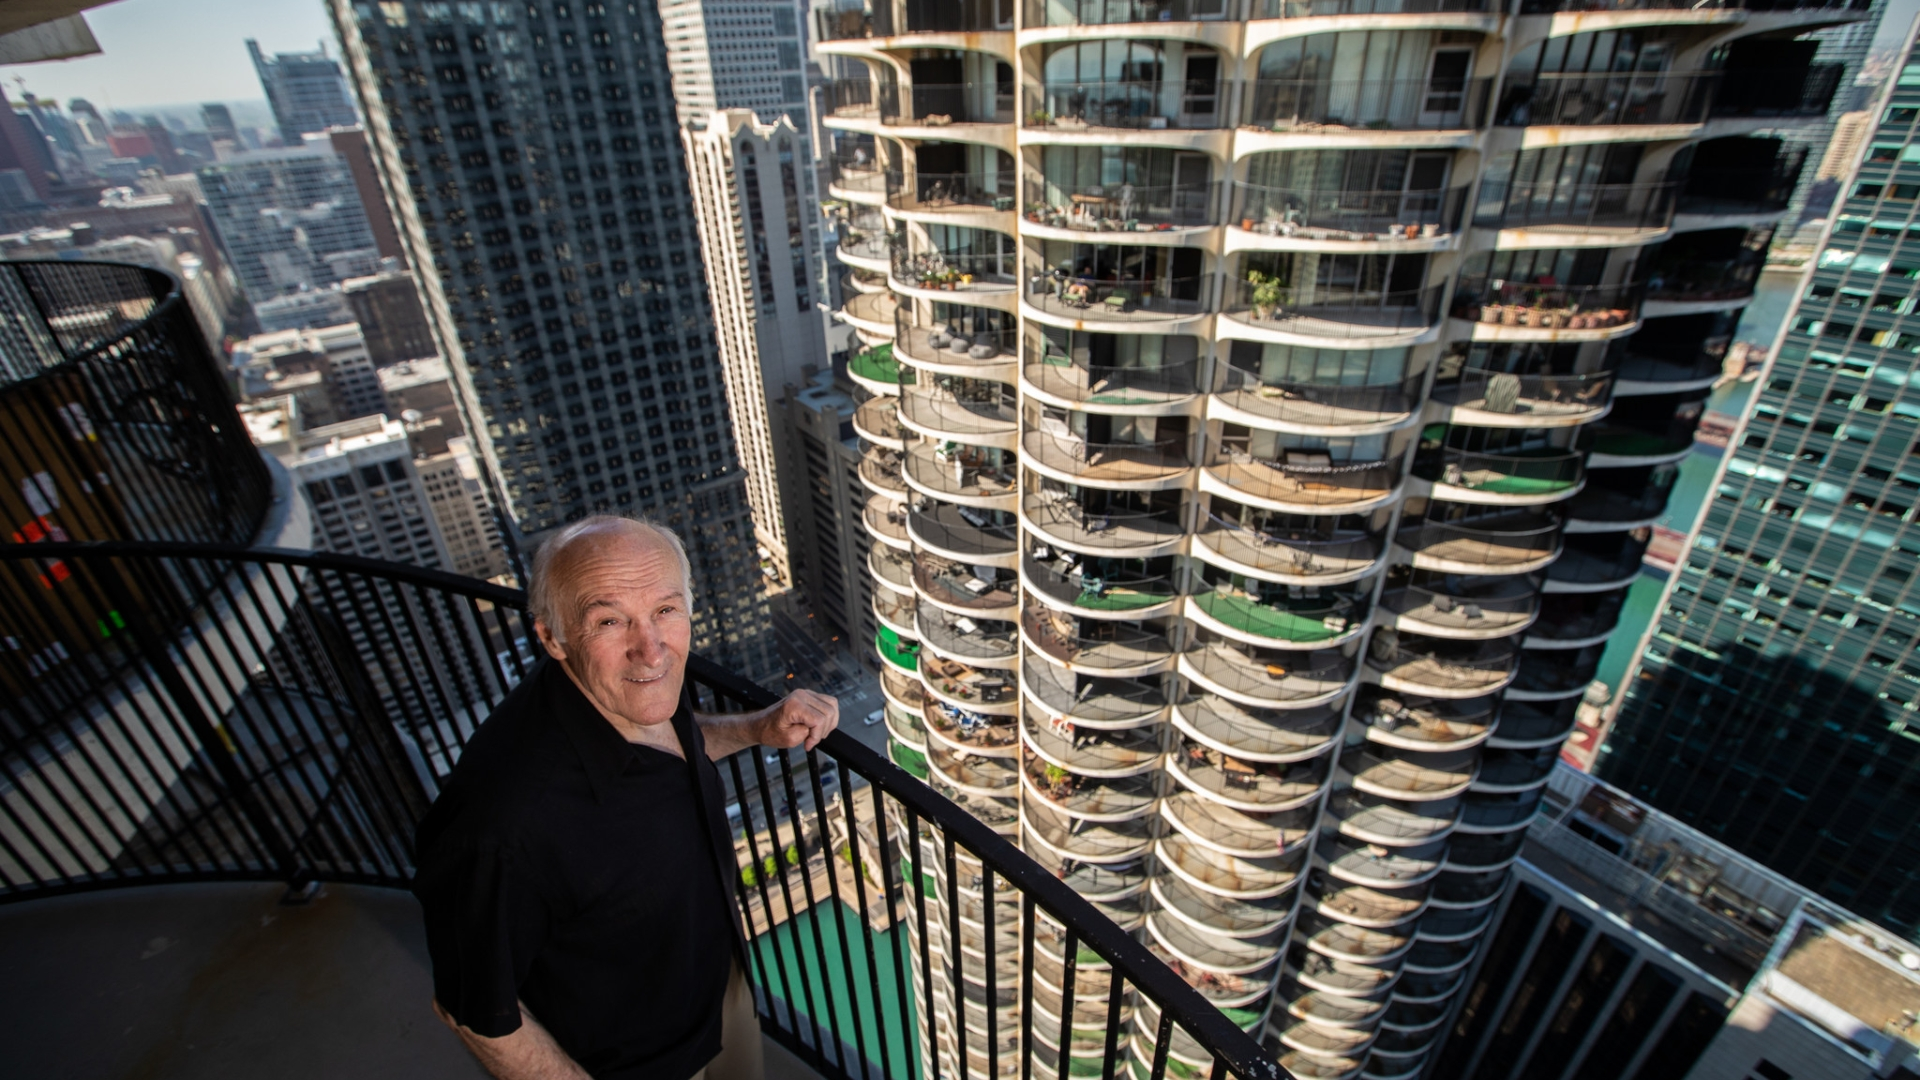 At 80, ironworker who has dangled atop Chicago's tallest